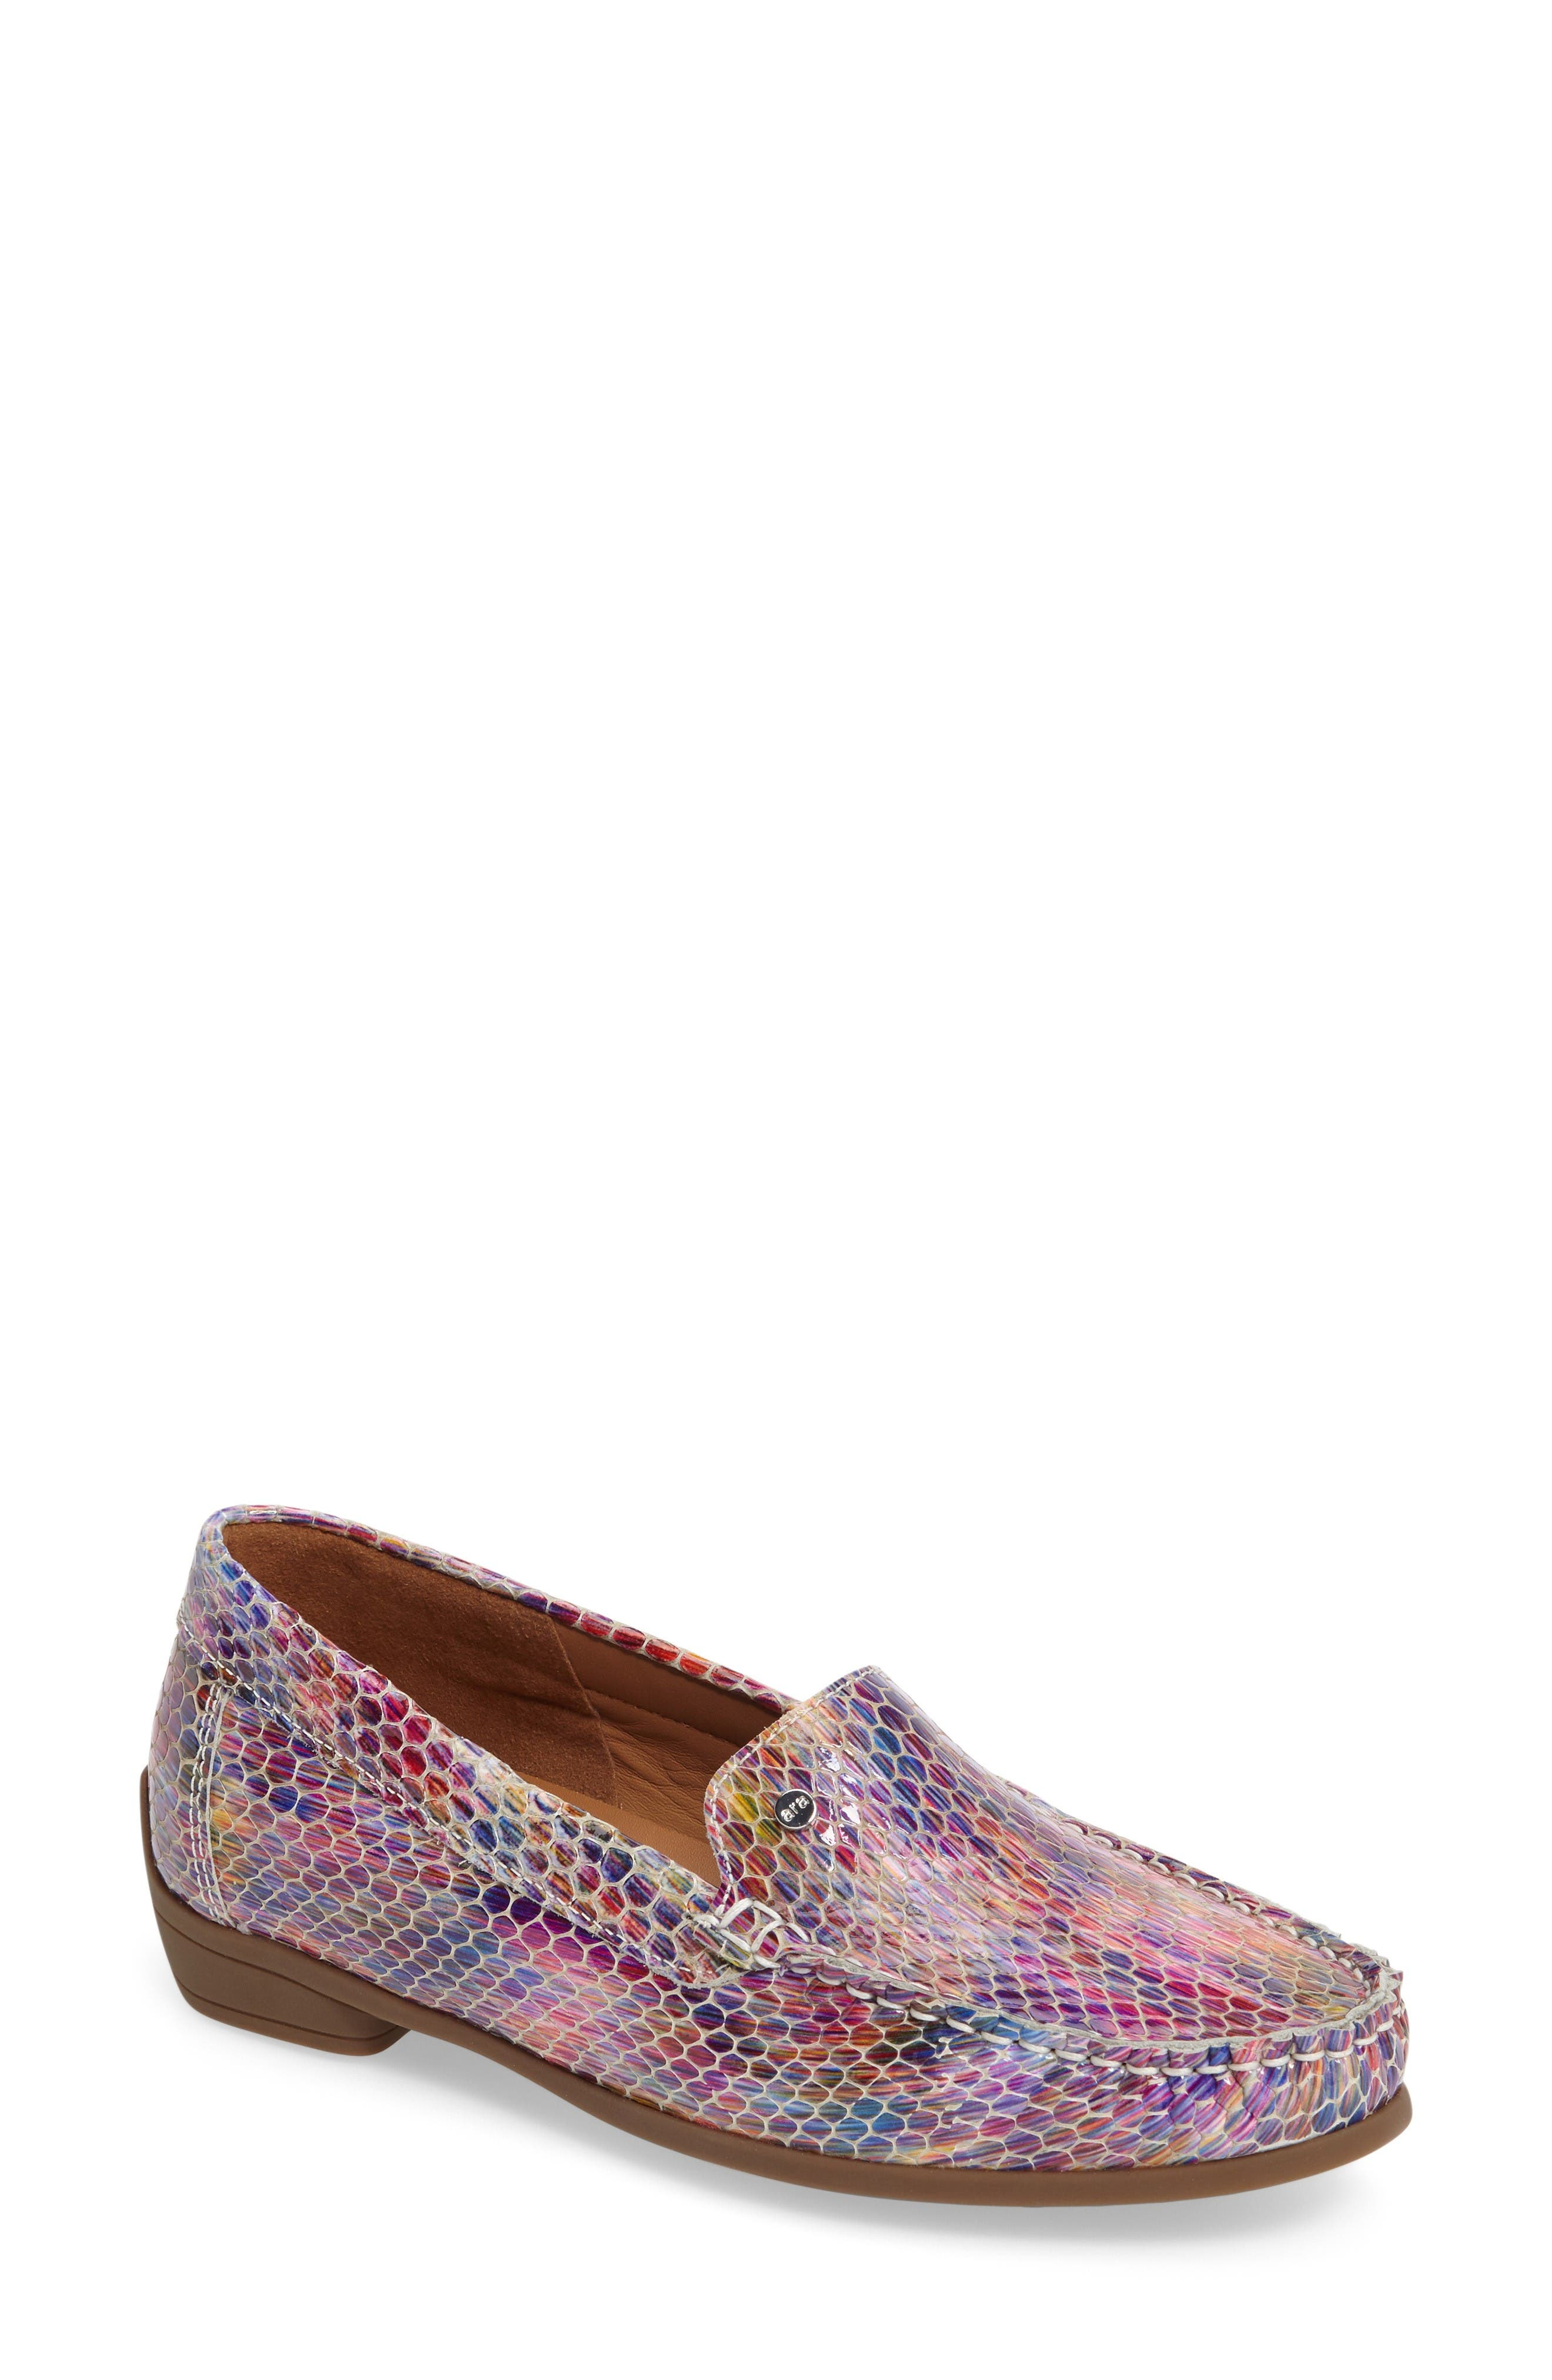 Barb Flat,                             Main thumbnail 1, color,                             Pink Multi Leather